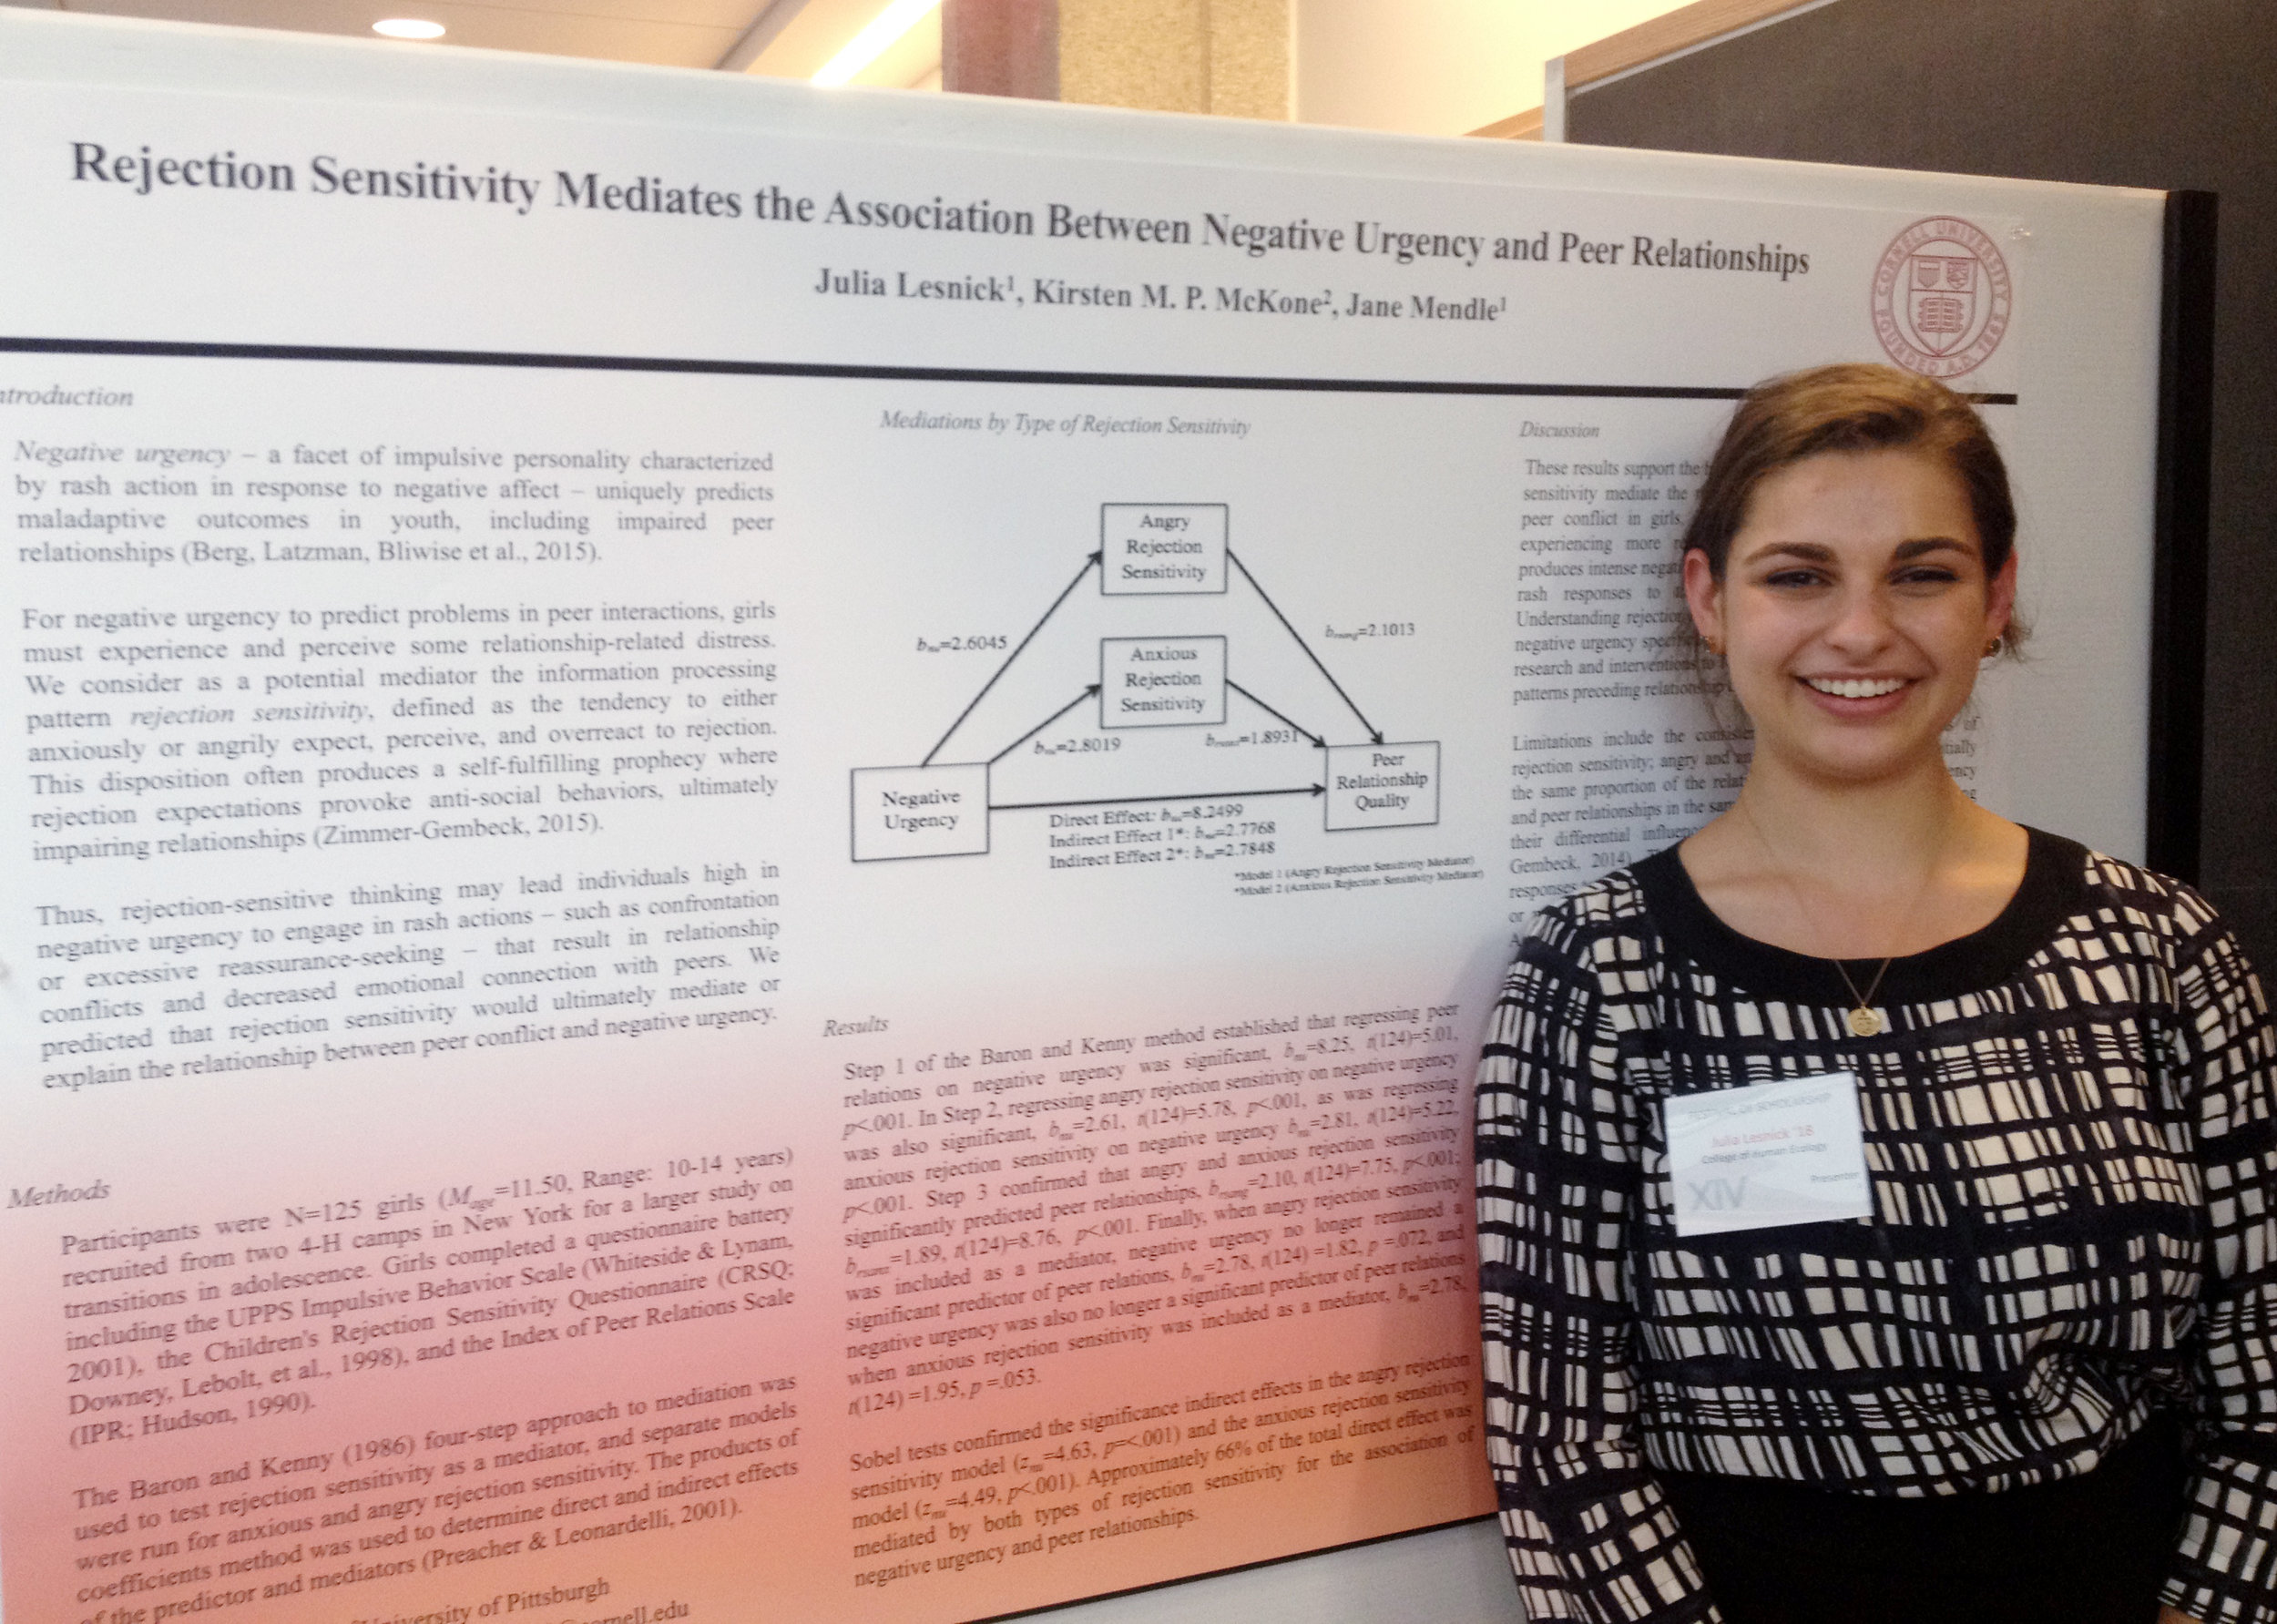 Julia Lesnick with her poster